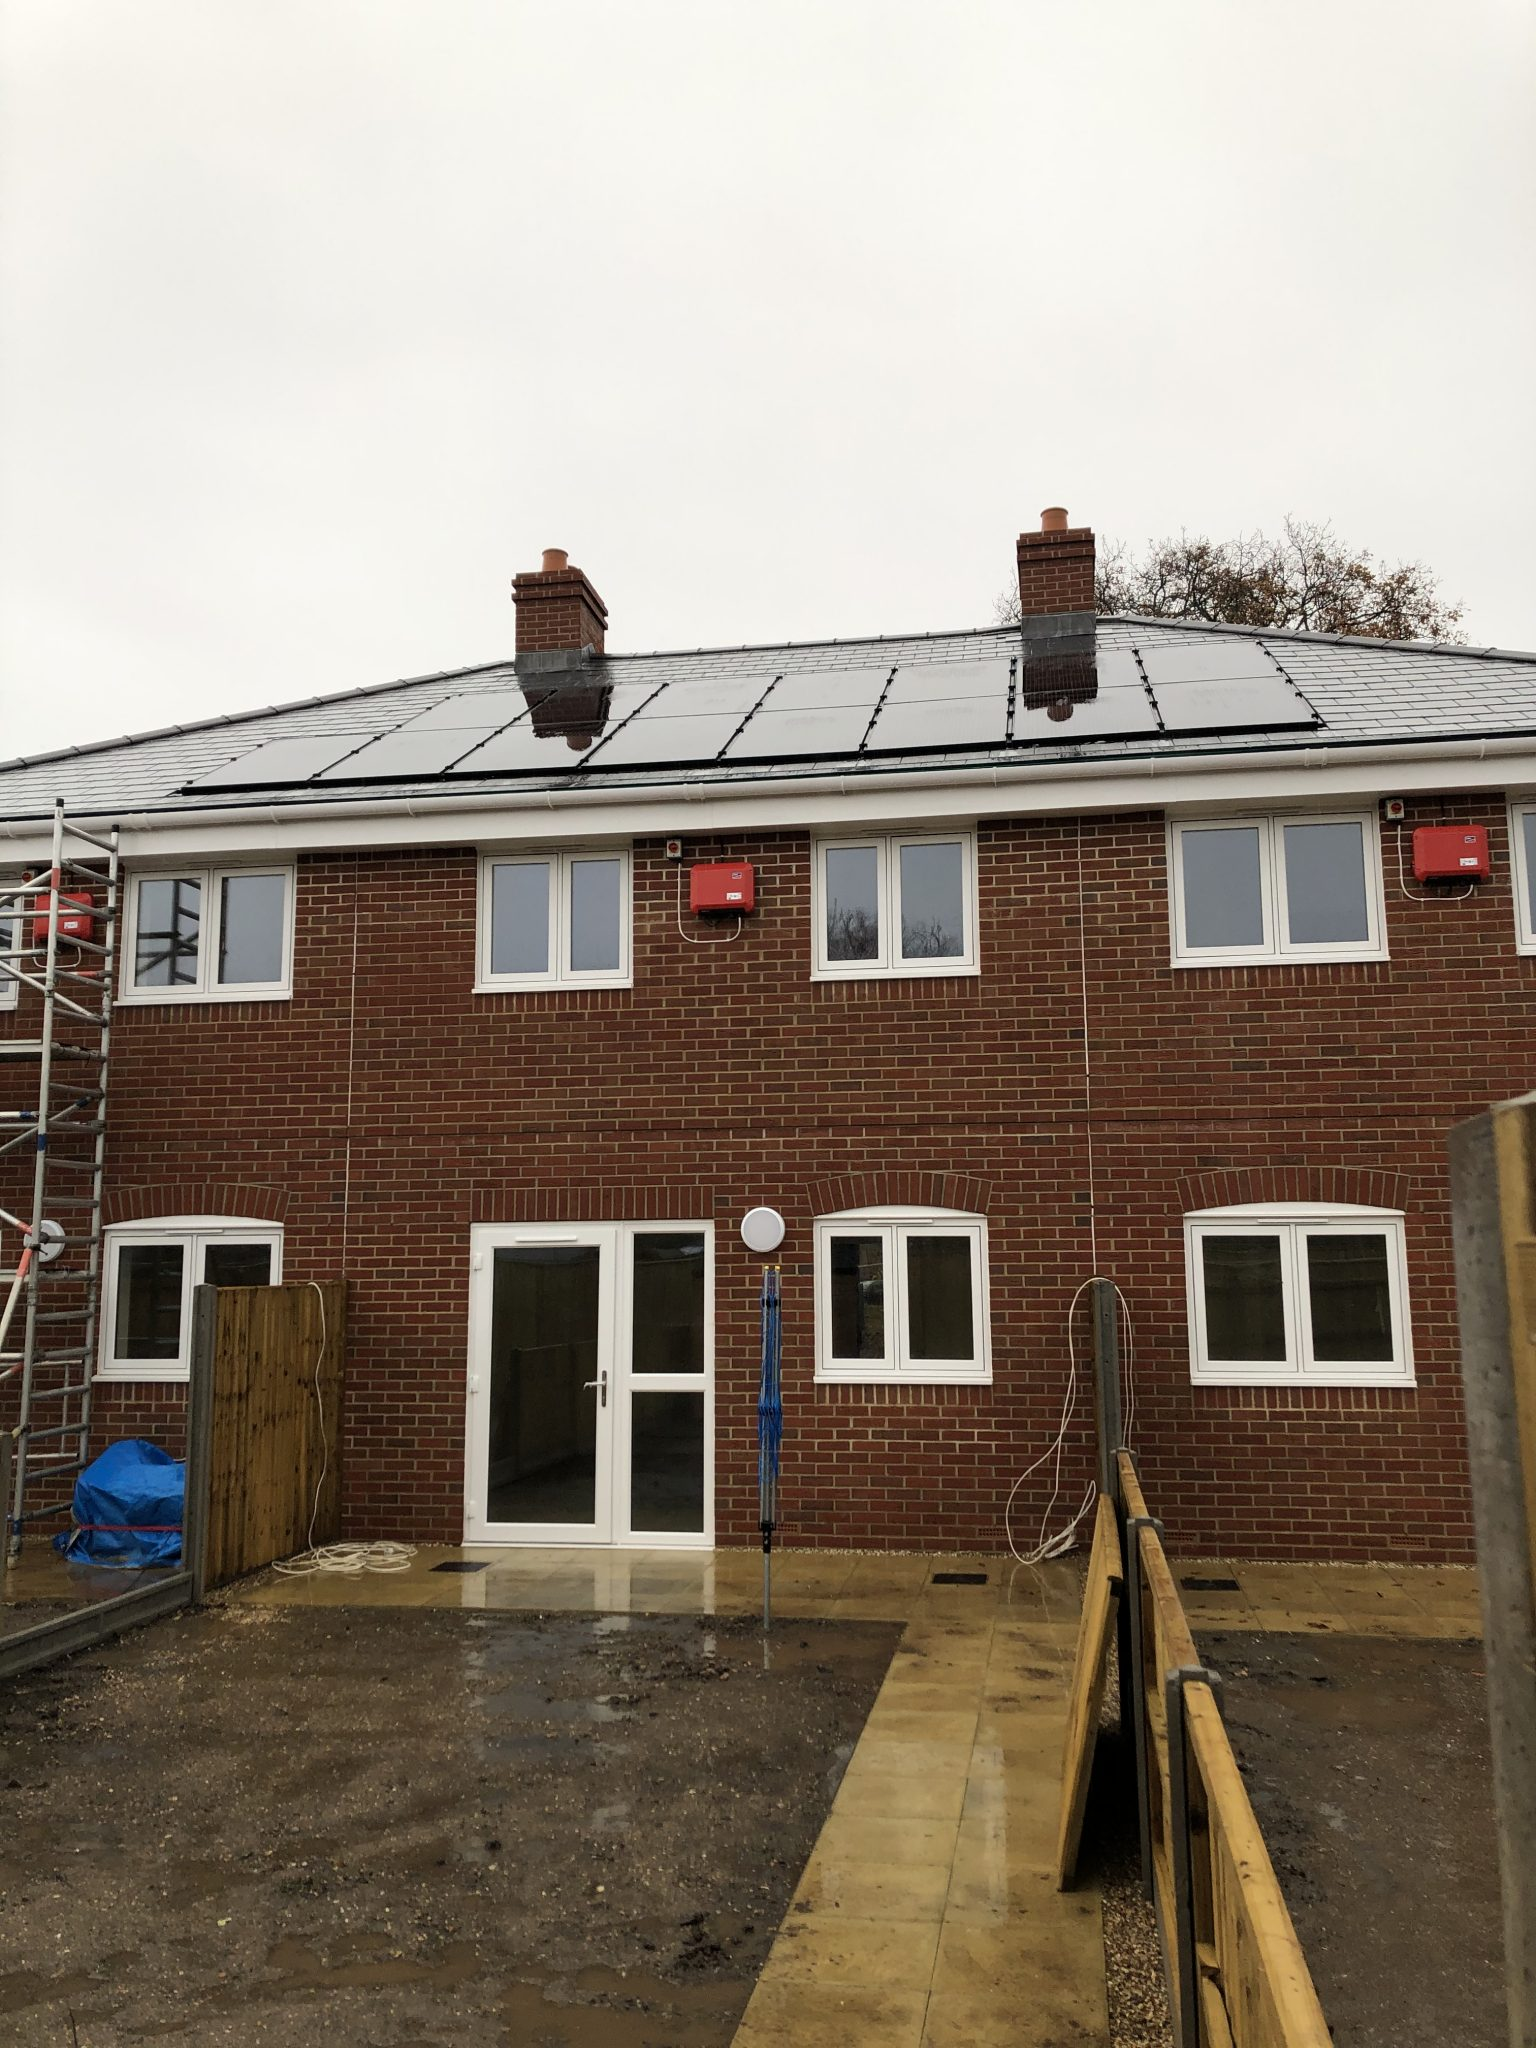 Domestic Solar Installation For Client In Dorset